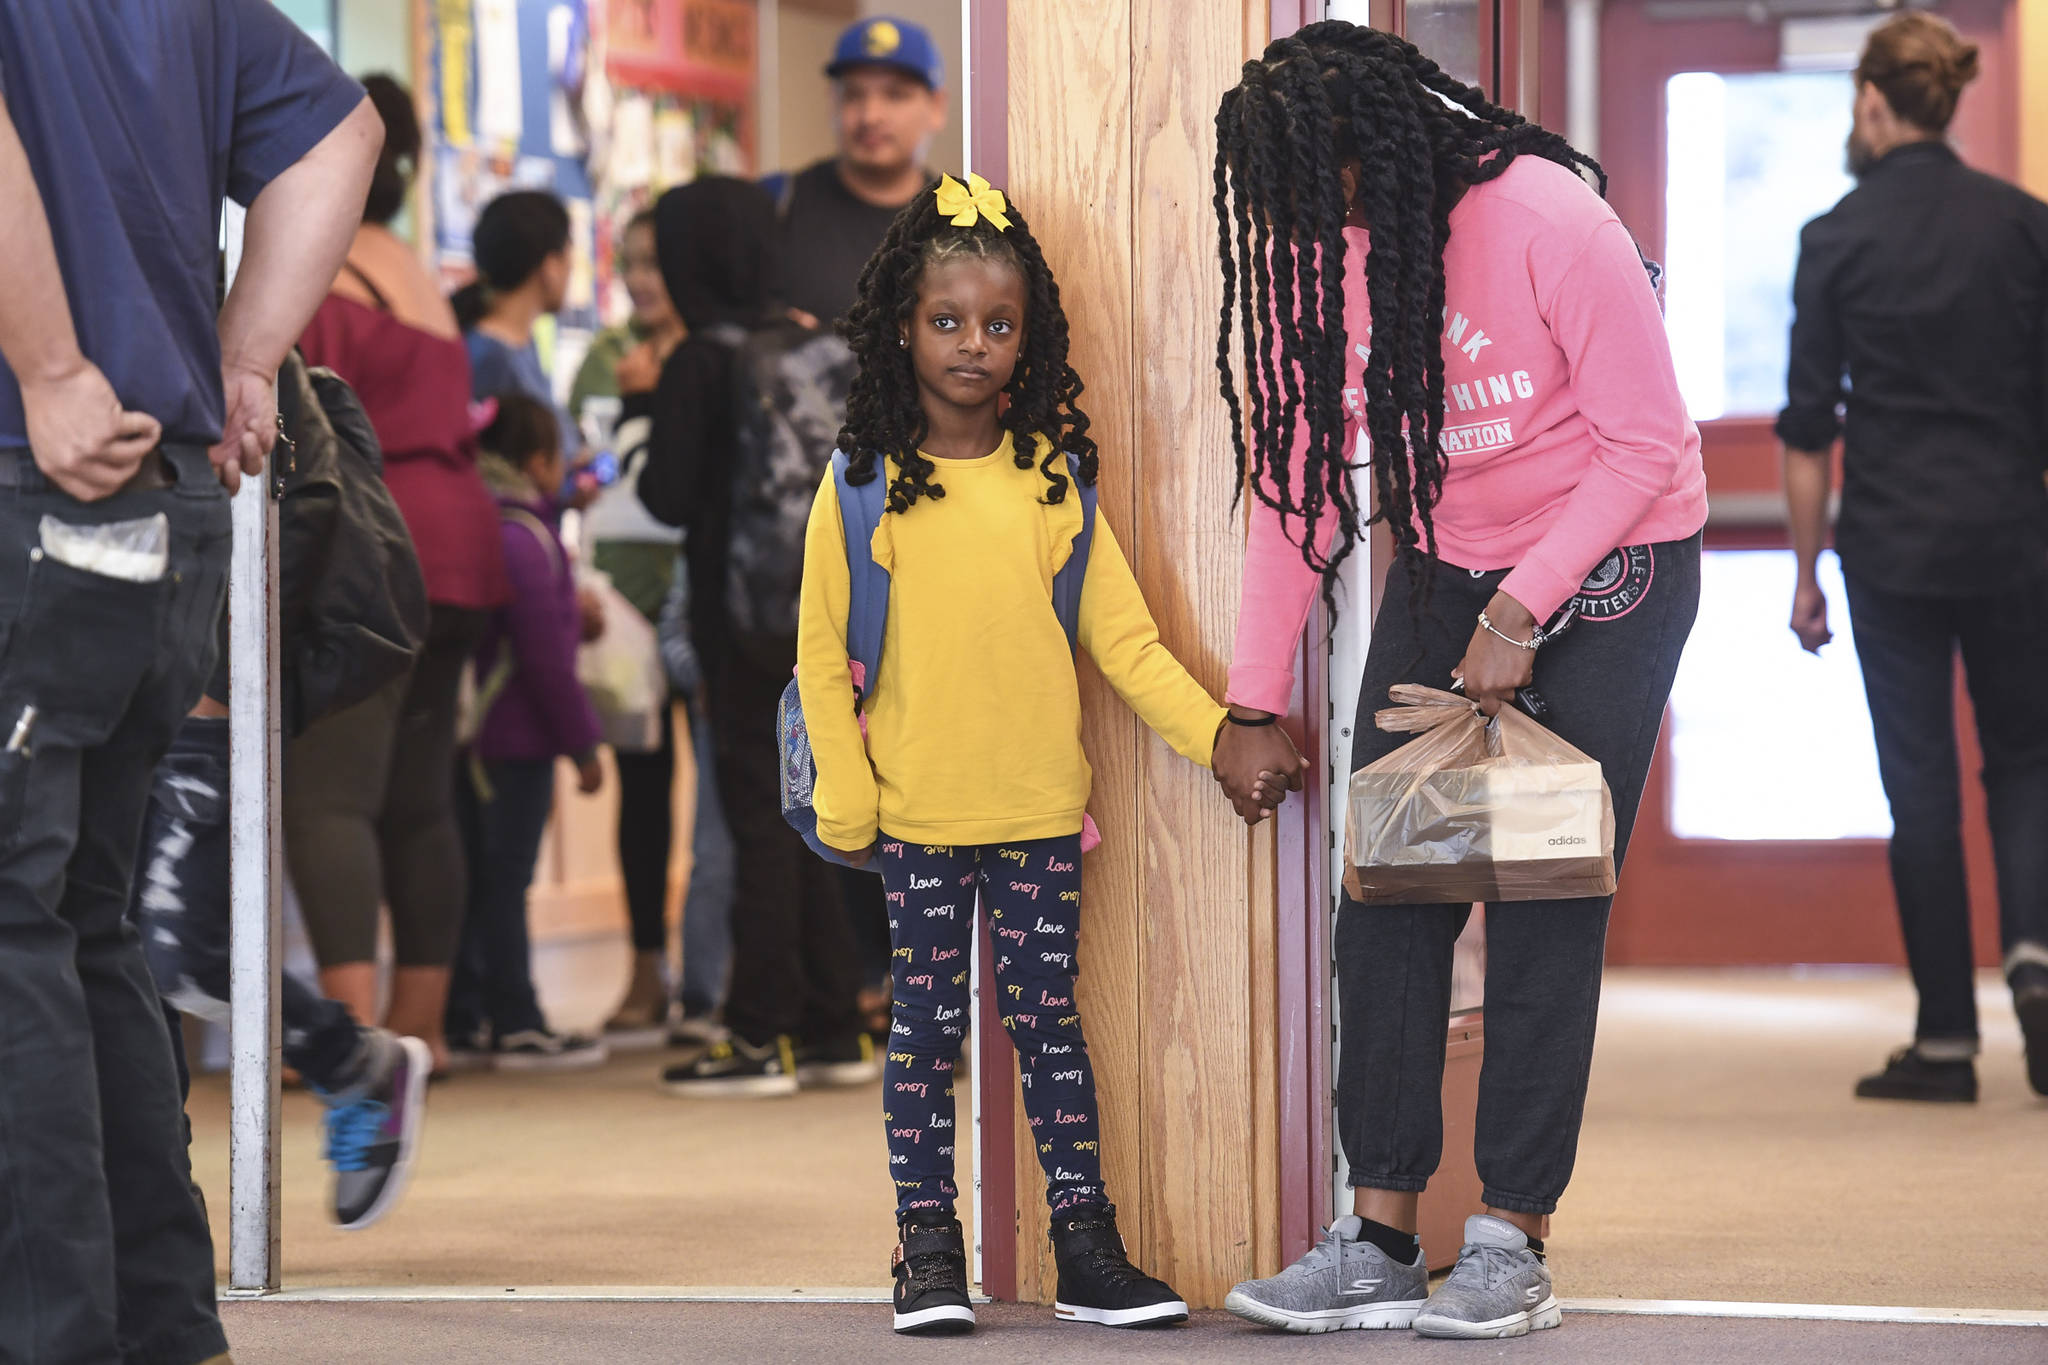 Ariyah Allen, holds hands with her mother, Odette, after arriving for the first day of school at Riverbend Elementary School on Monday, Aug. 19, 2019. (Michael Penn | Juneau Empire)